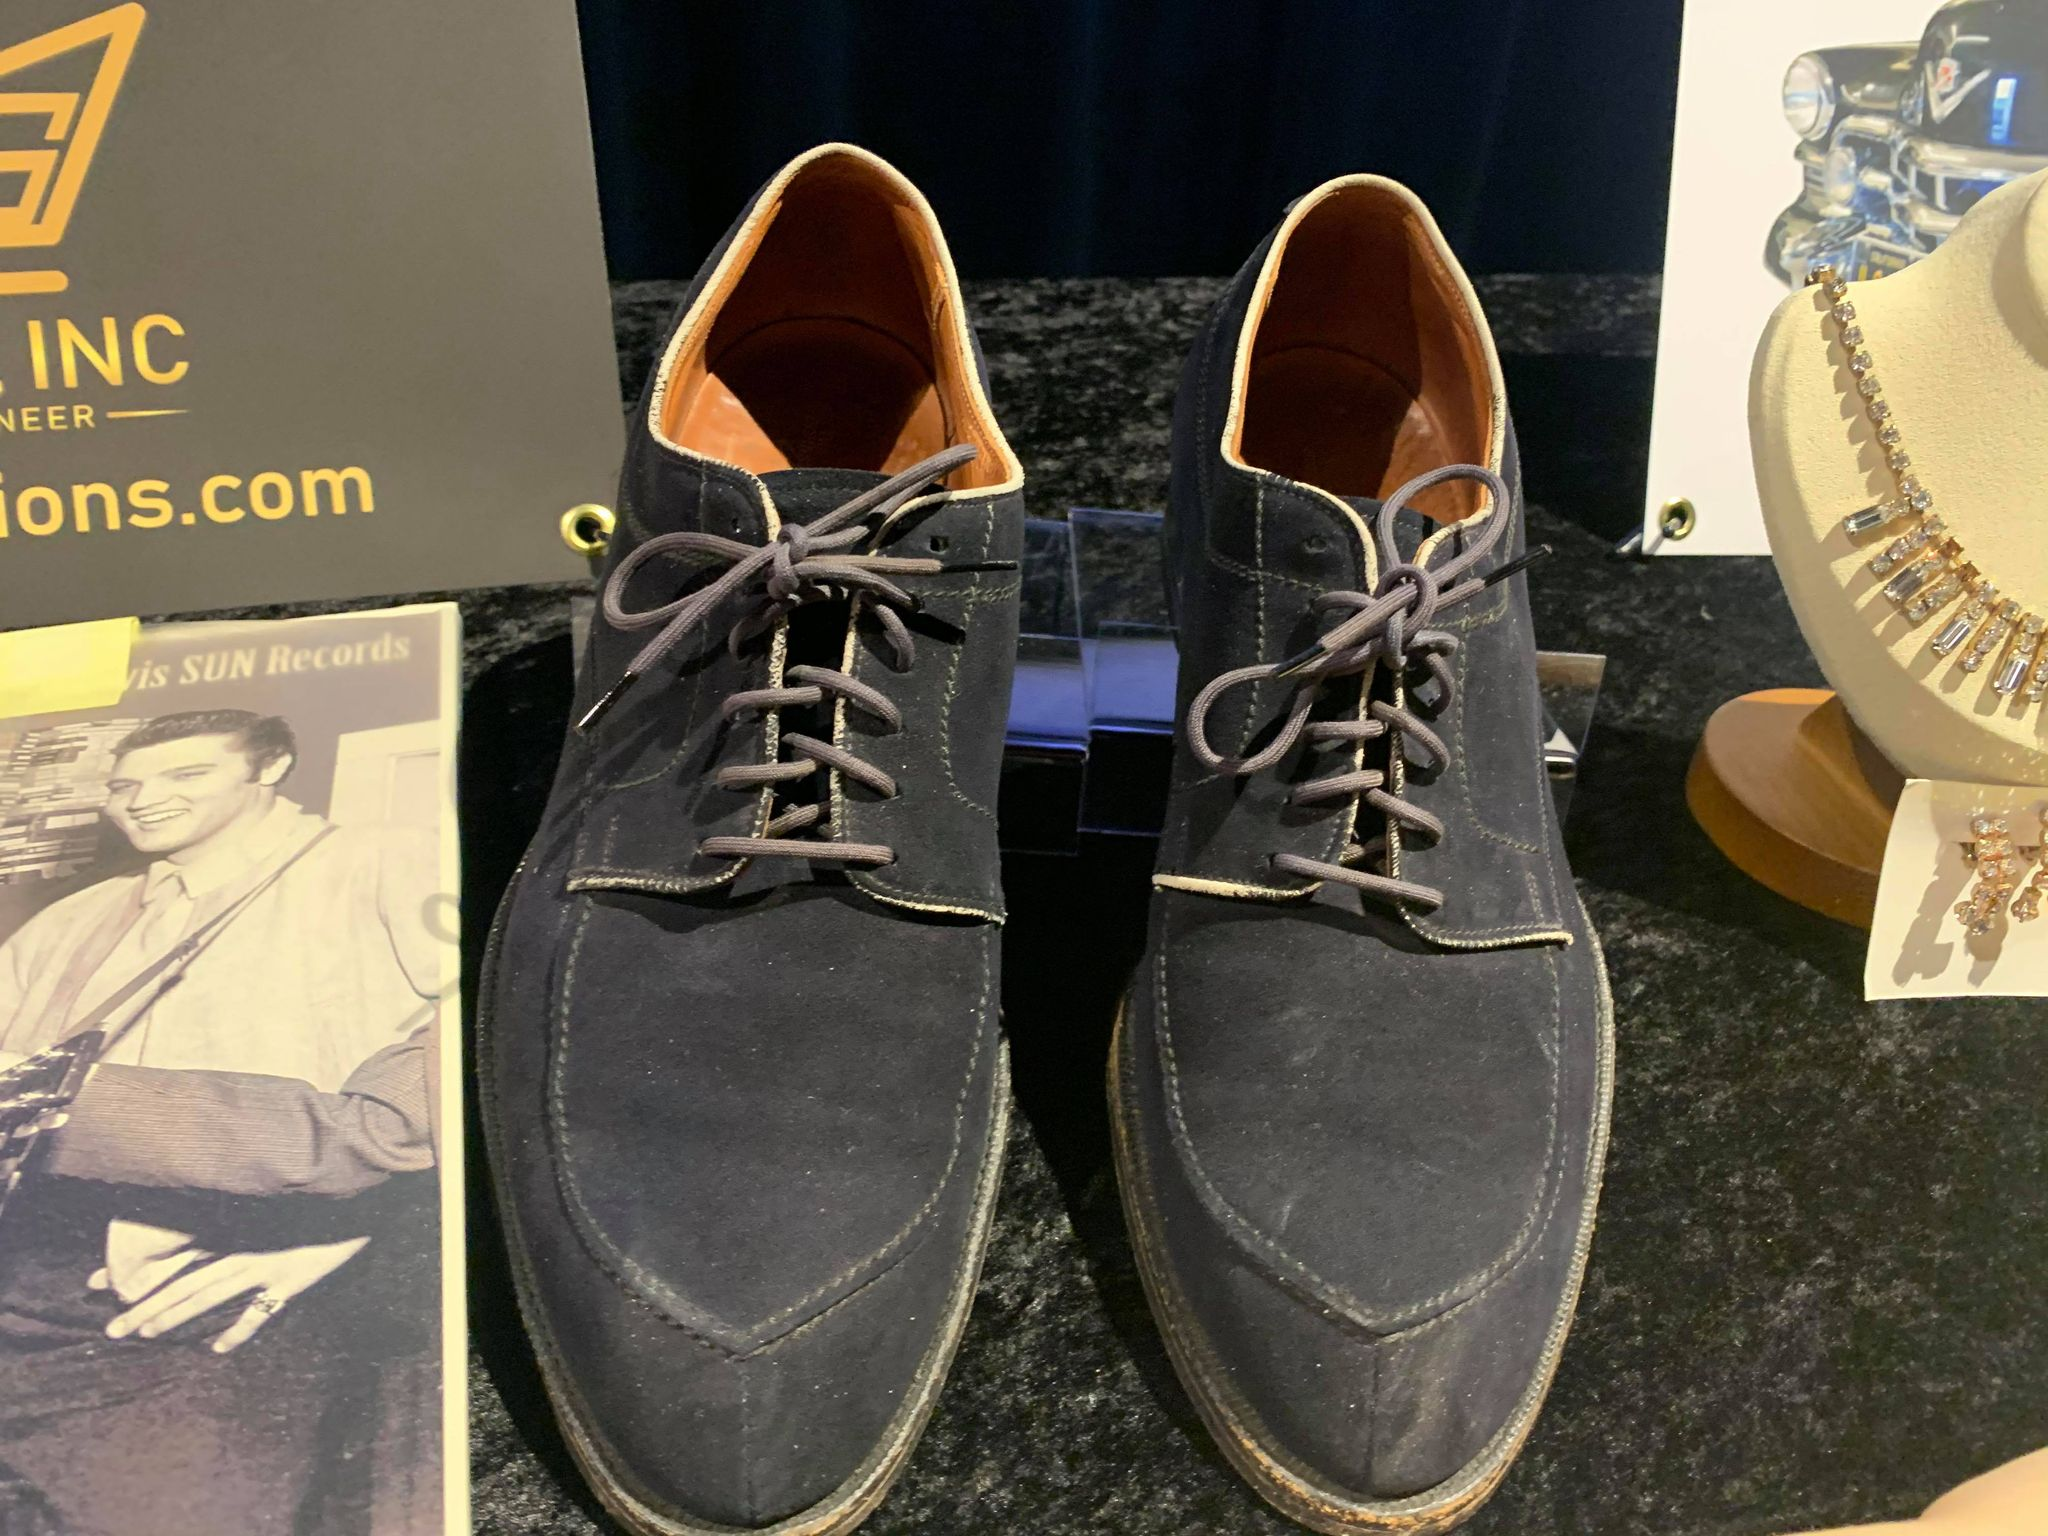 Kruse GWS Auctions: Carl Perkins Blue Suede Shoes